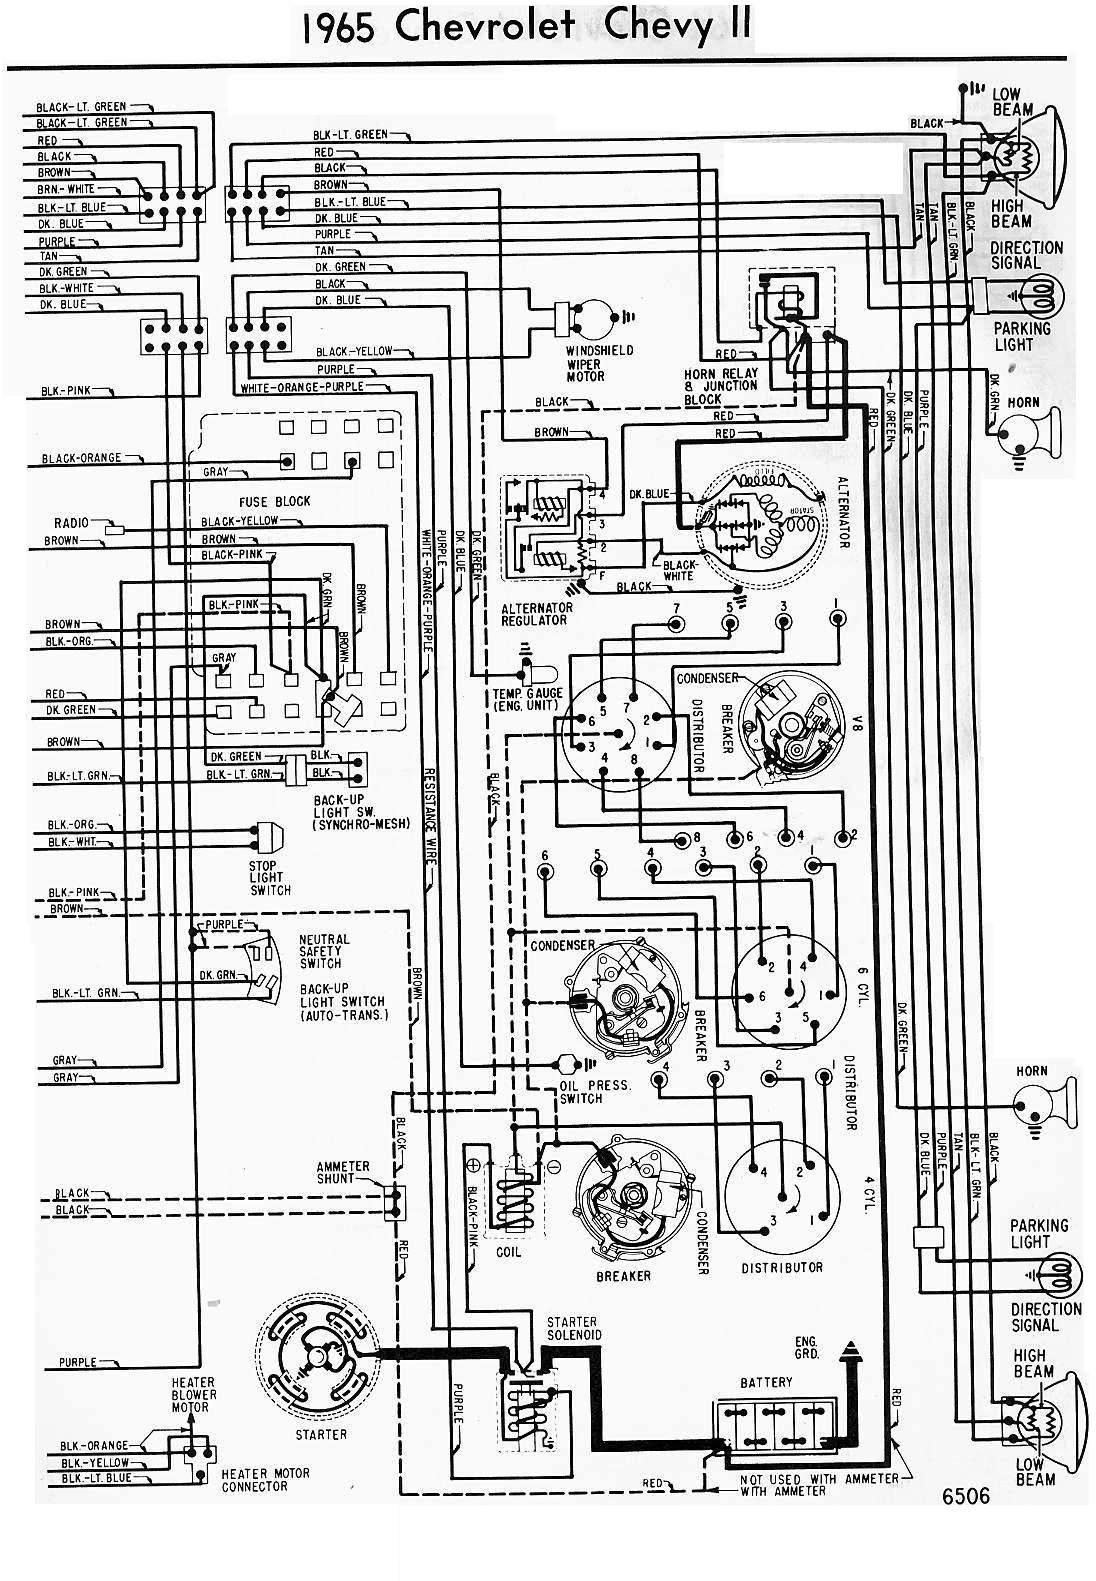 1965 chevy wiring diagram GwtSdvU diagrams 480314 1975 corvette wiring diagram 1975 corvette 1975 corvette wiring diagram at reclaimingppi.co